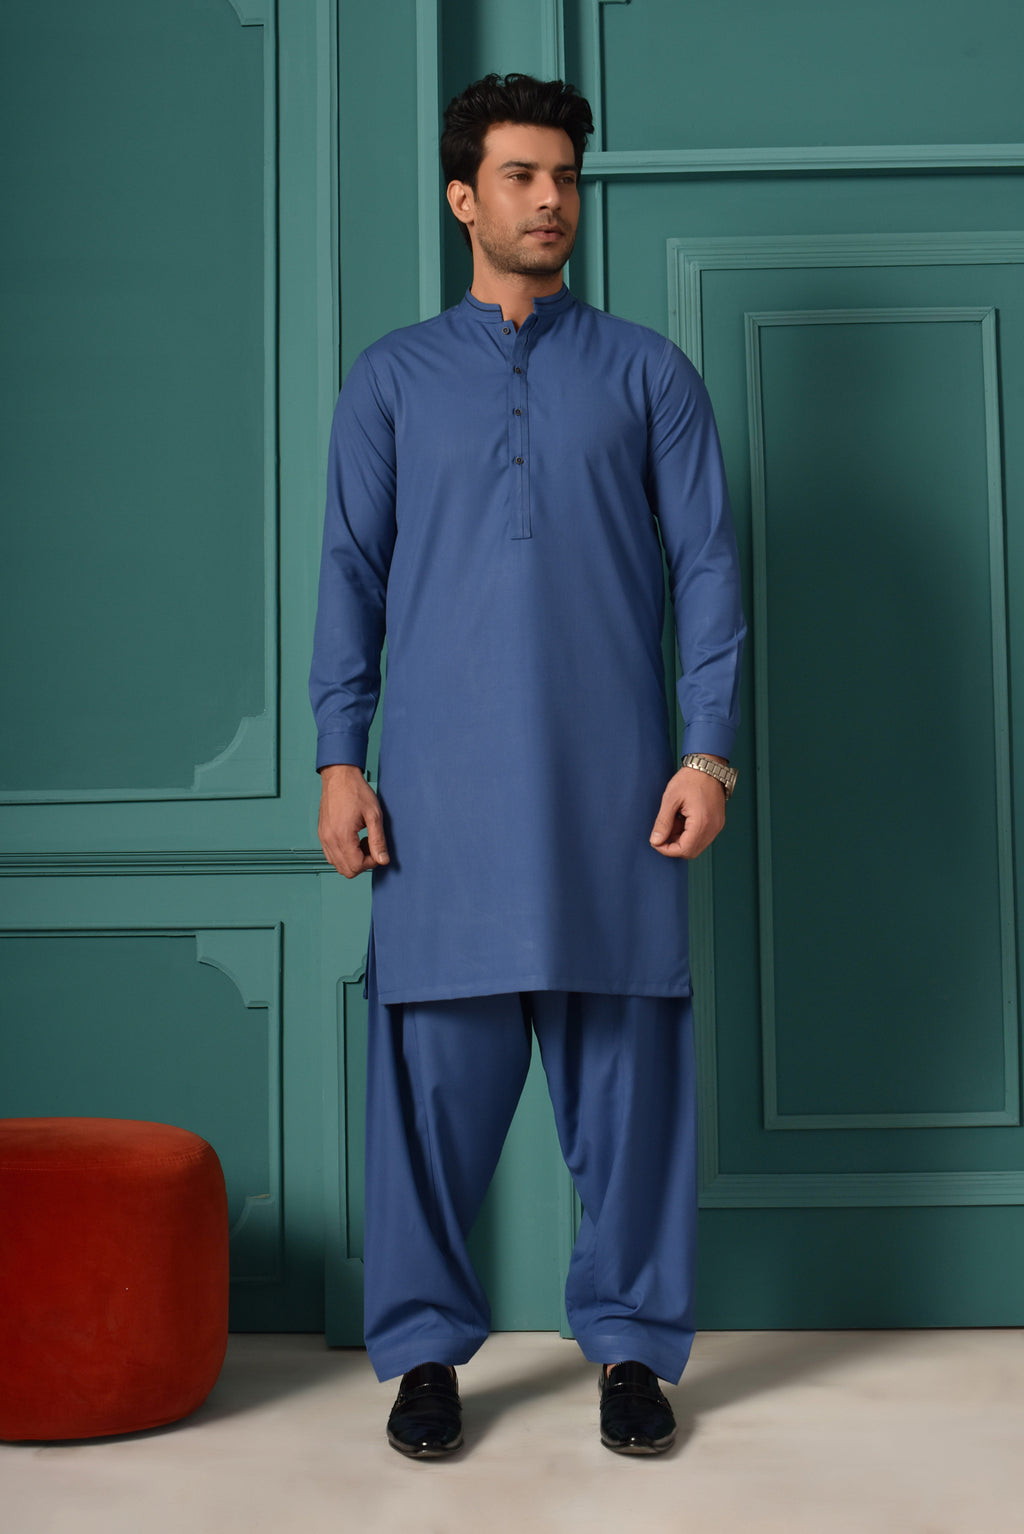 Suit - Ethnic by Outfitters